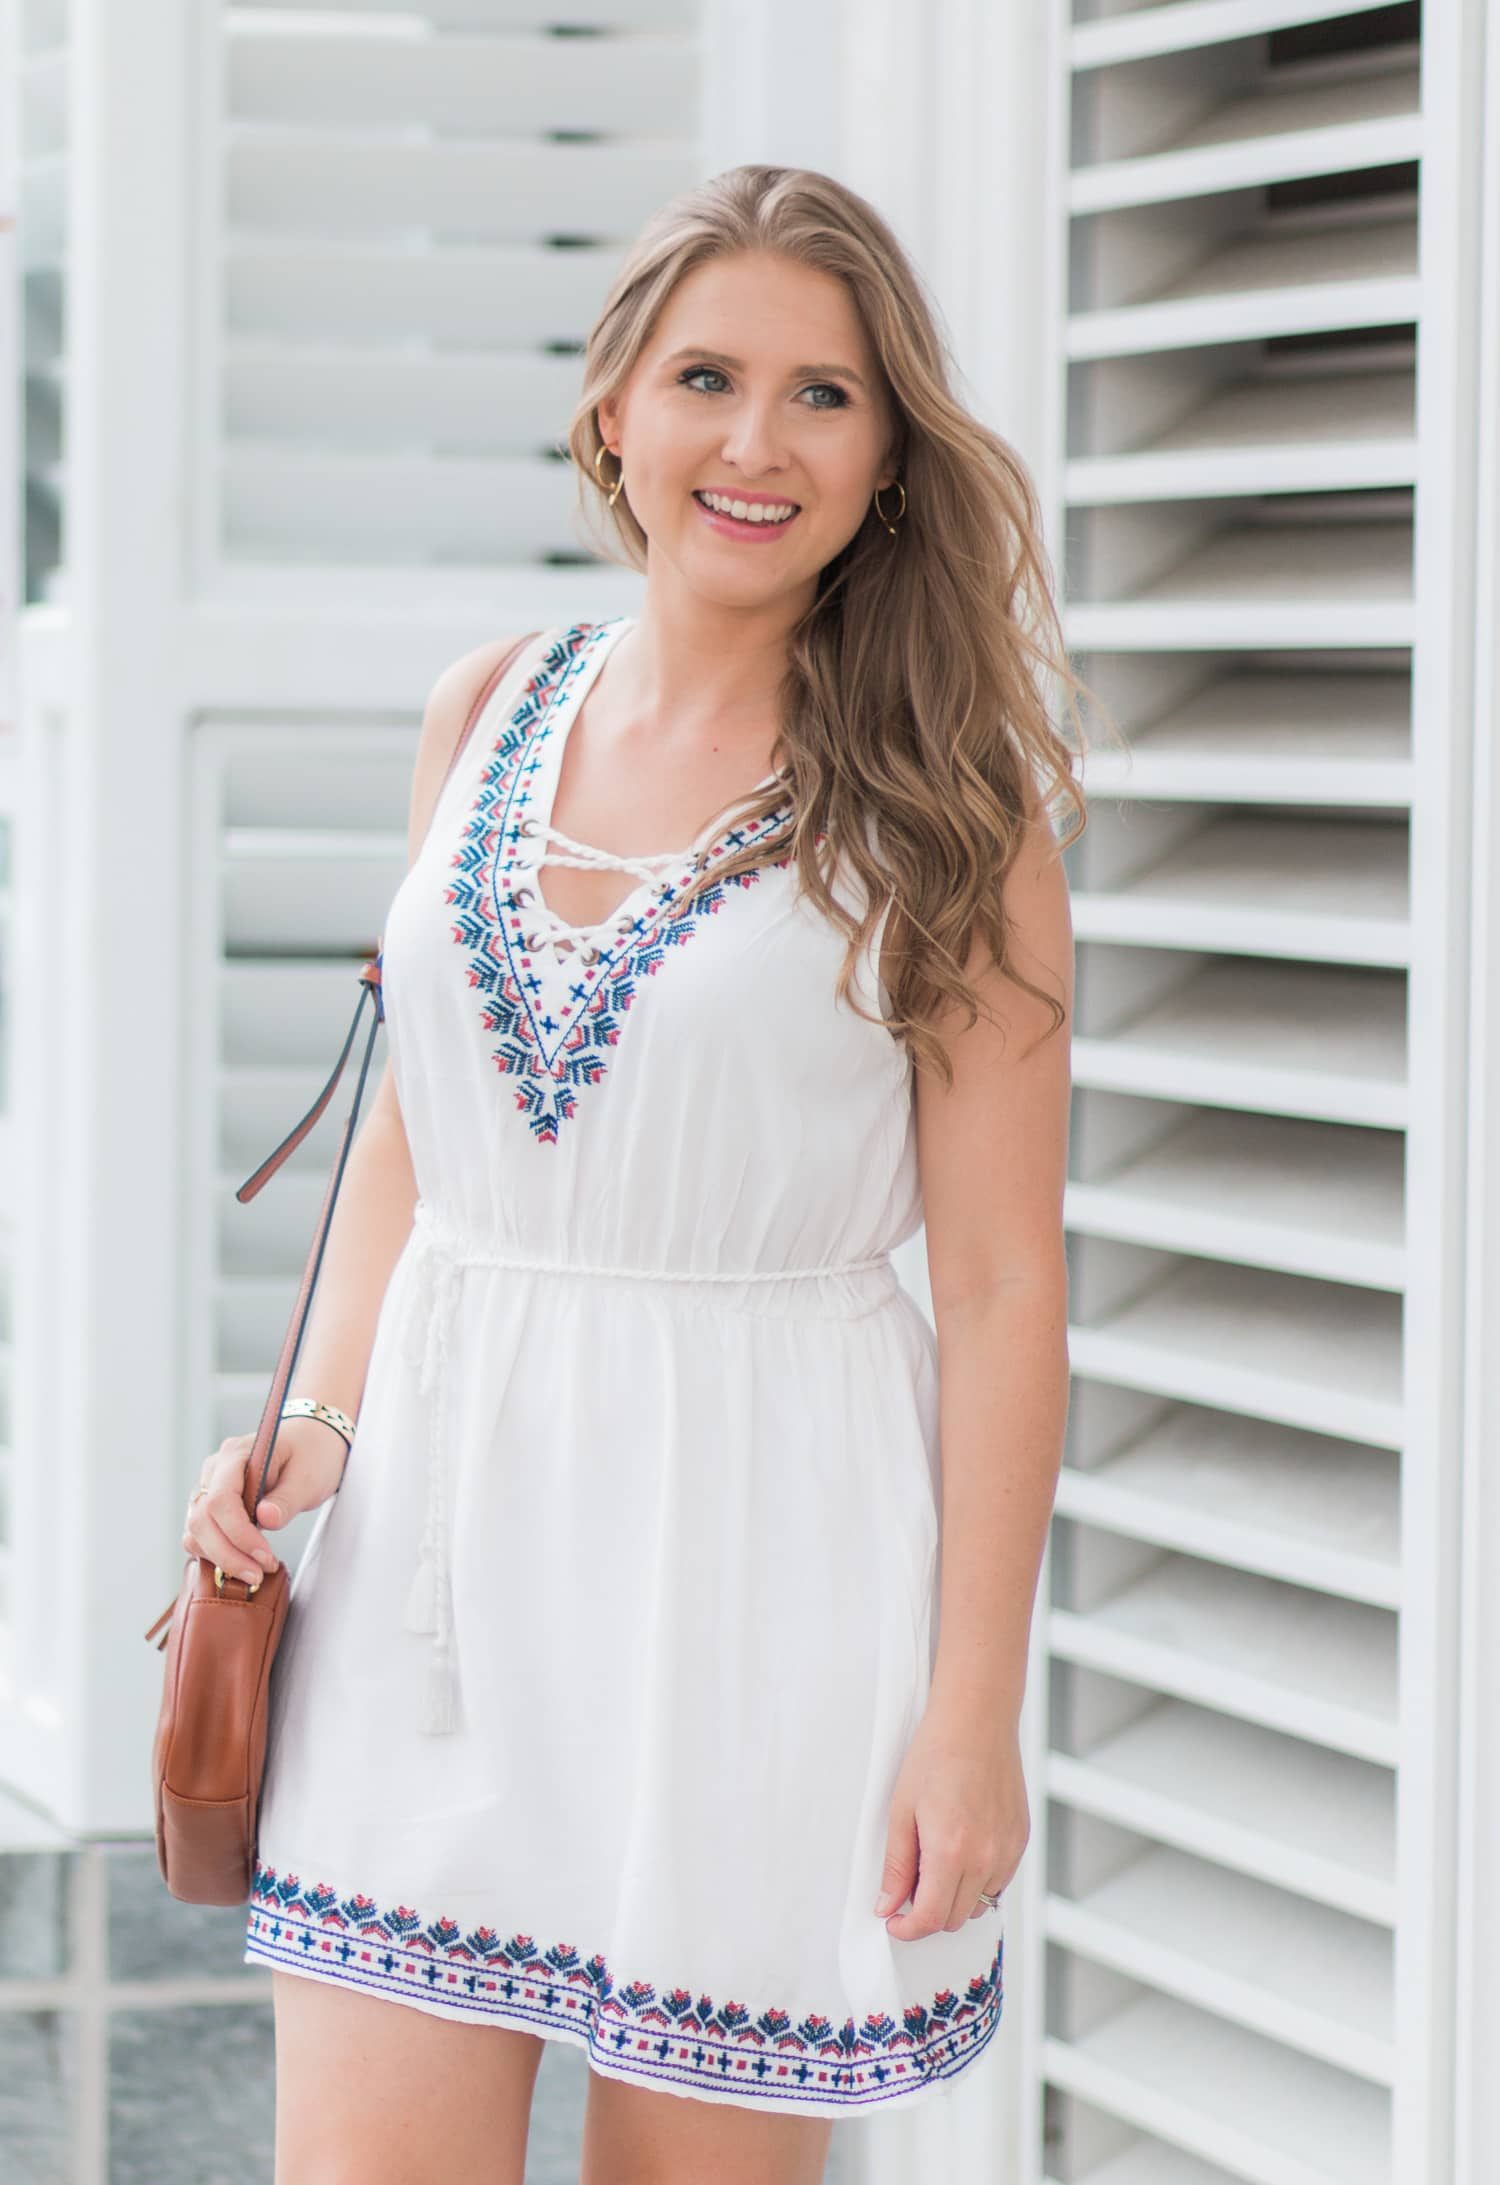 Forever 21 embroidered lace-up dress, Old Navy cognac tassel crossbody bag, and Stella & Dot Addison cuff and Winding Arrow earrings | Ashley Brooke Nicholas